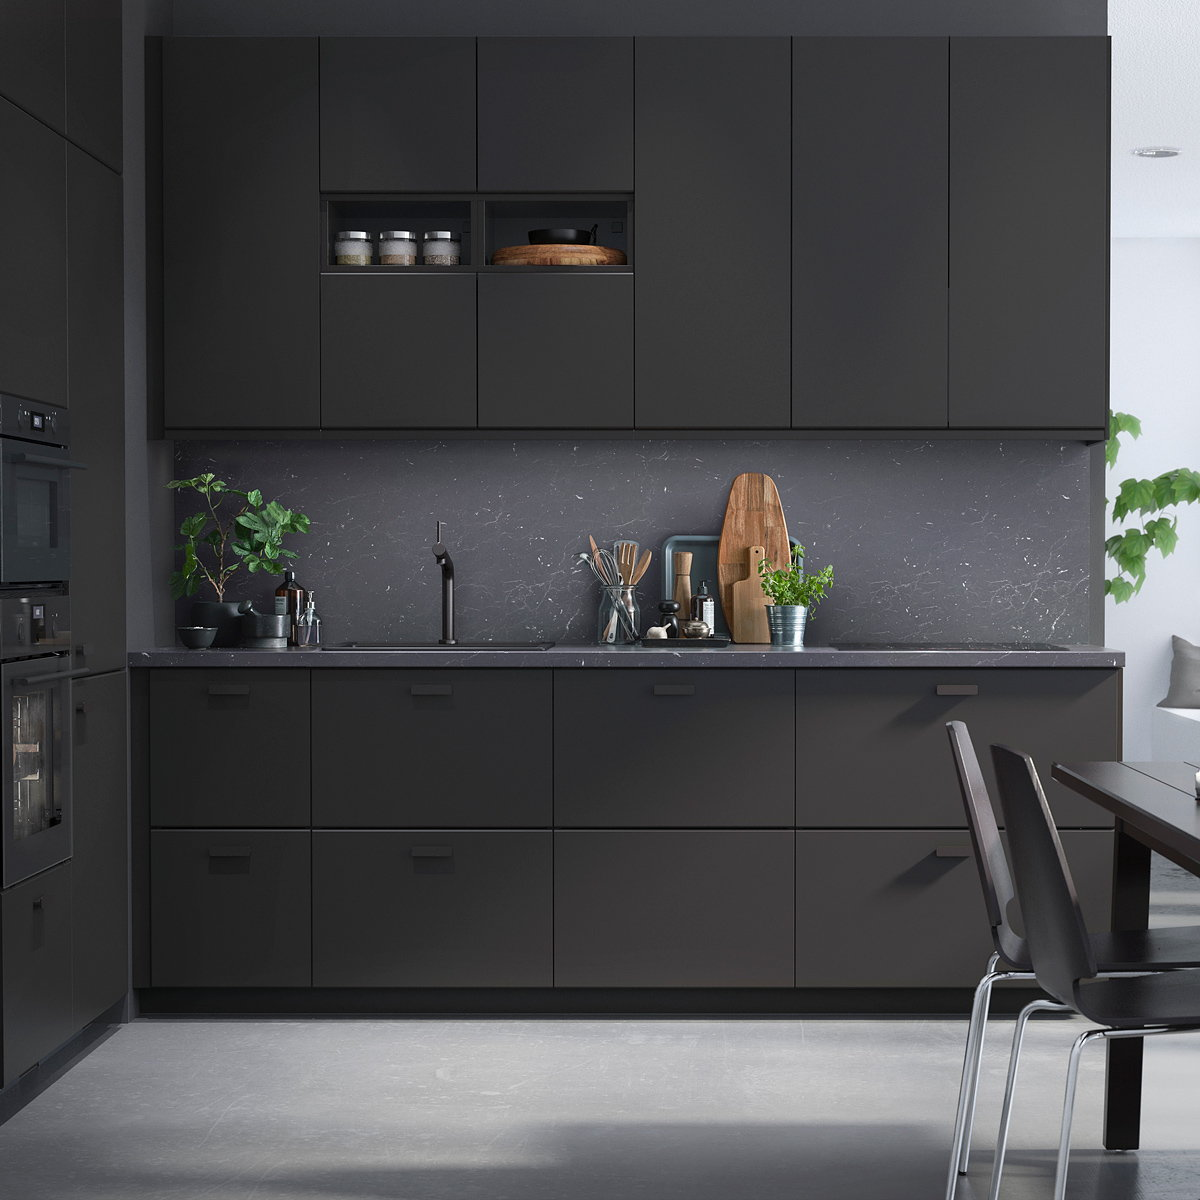 Ikea kungsbacka by form us with love - Cuisine noir mat ikea ...